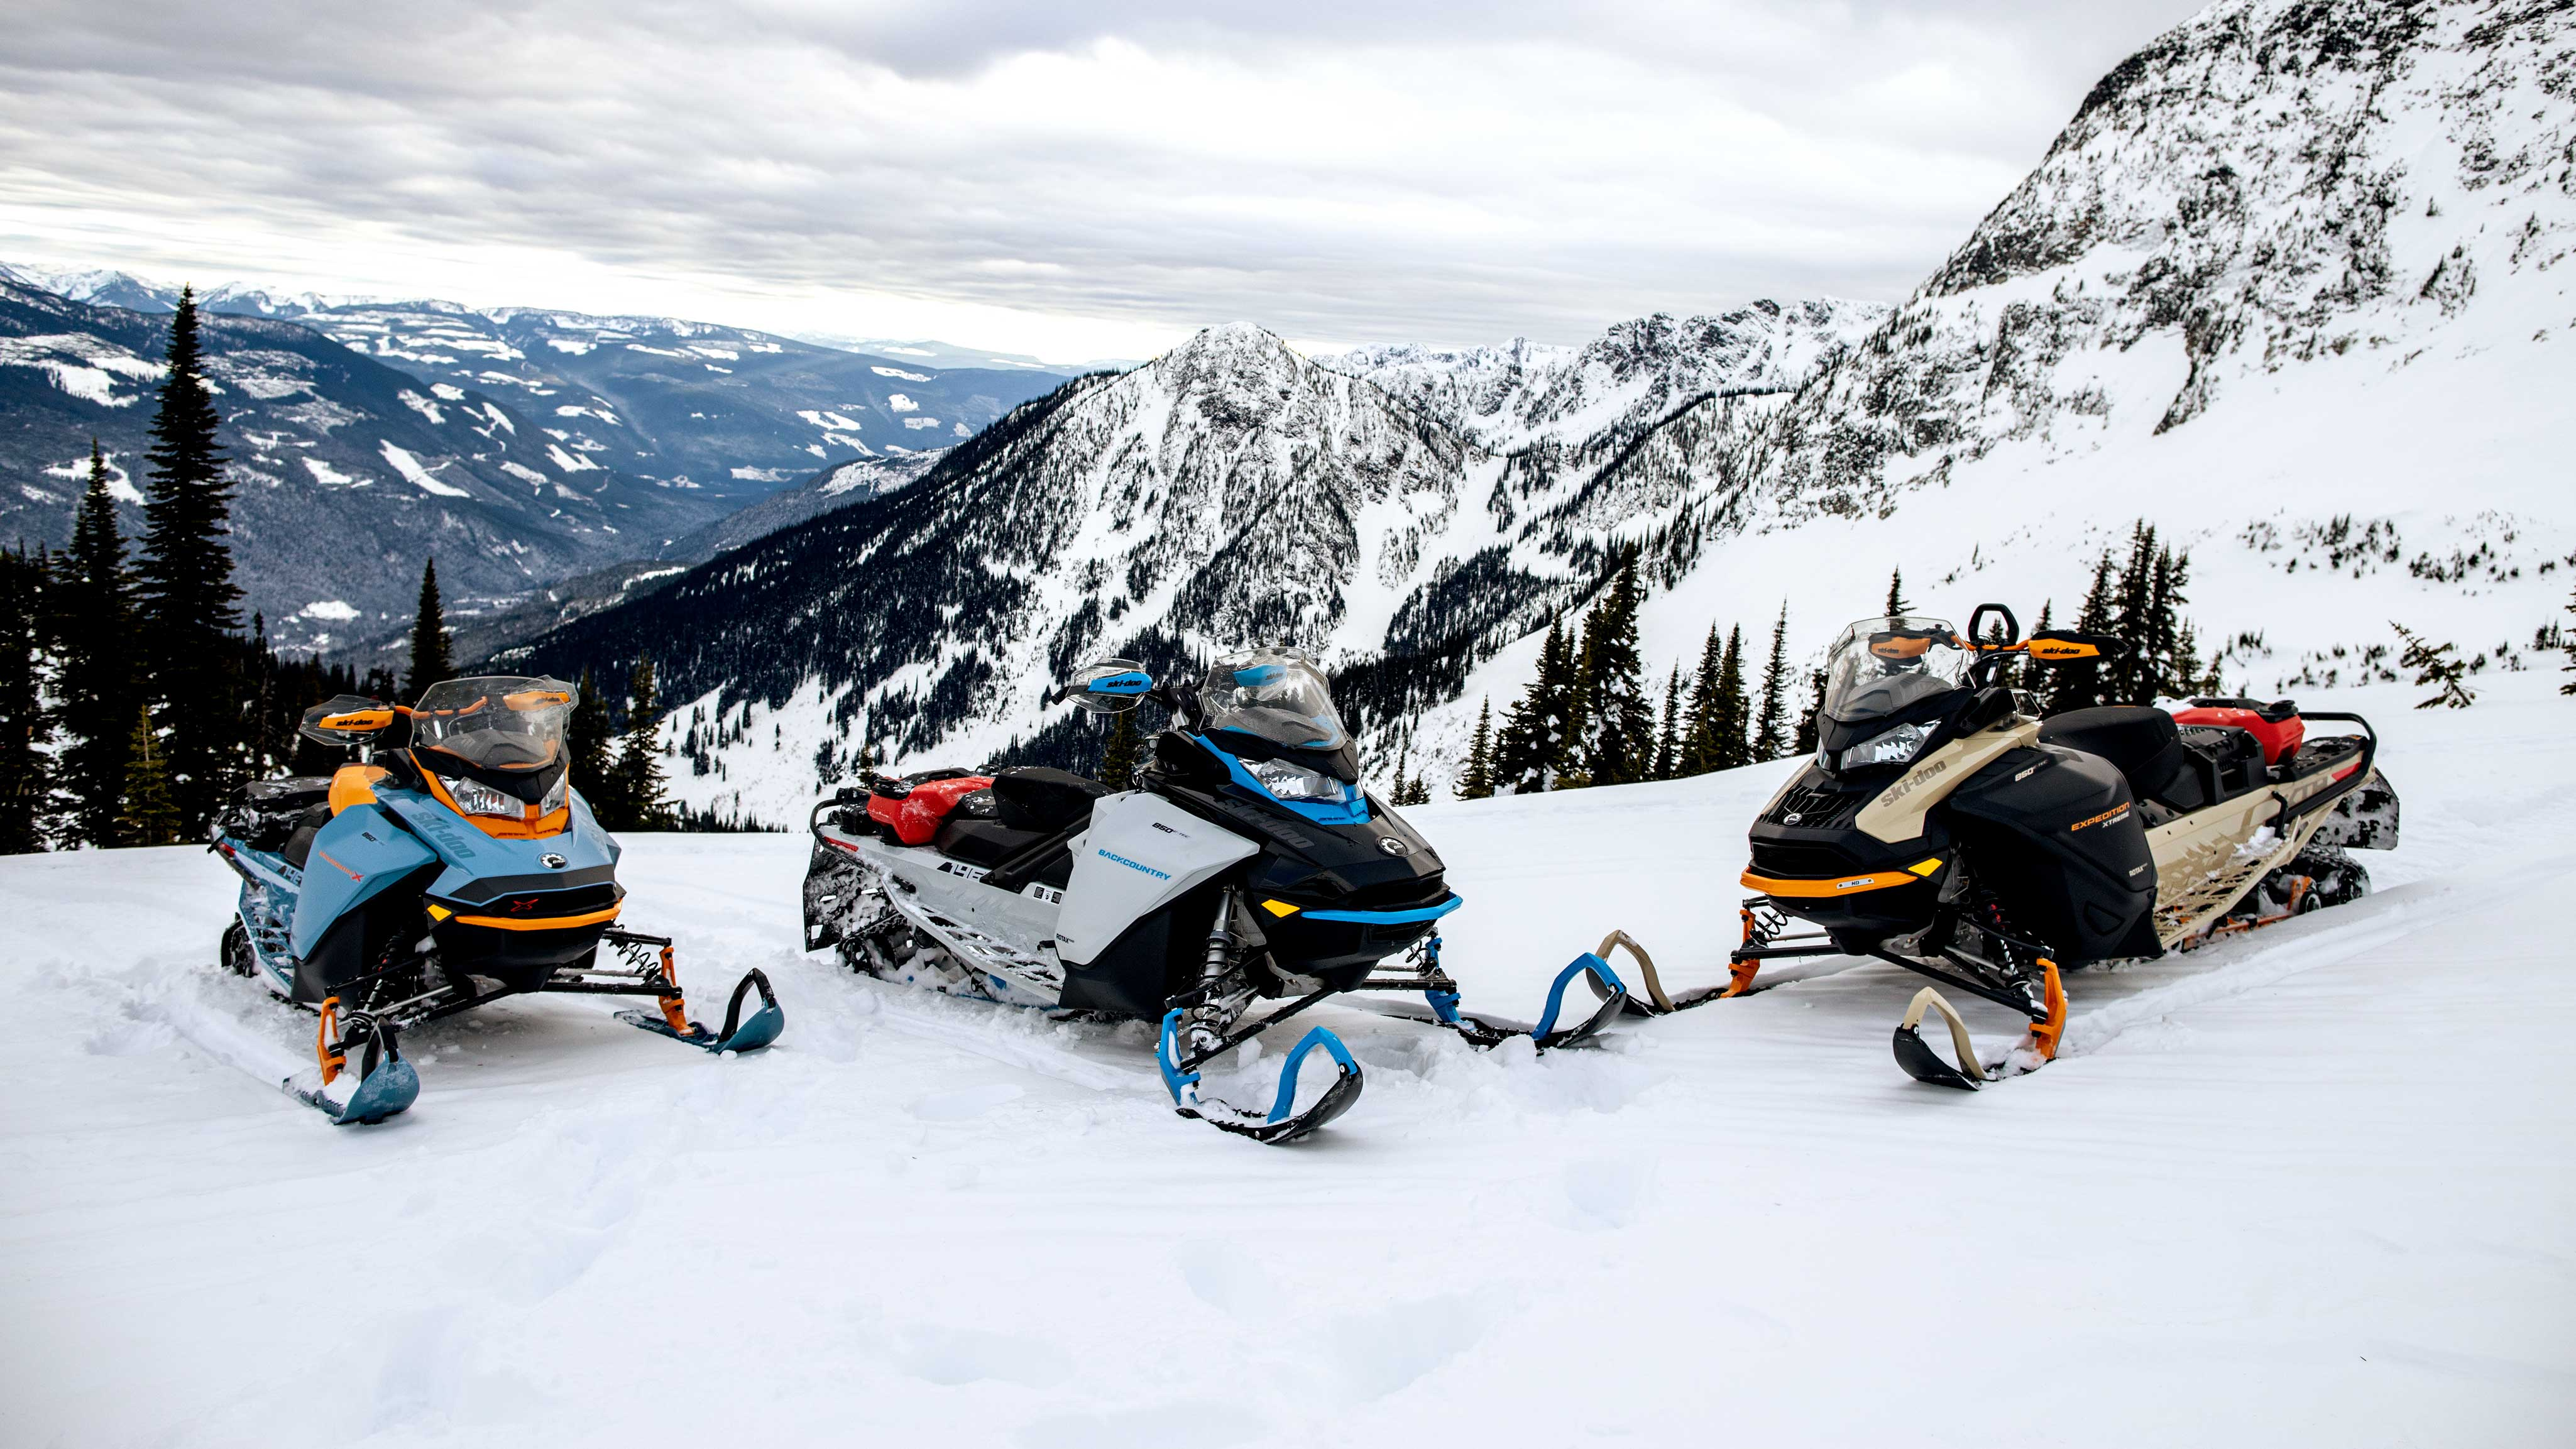 2022 Ski-Doo new sled